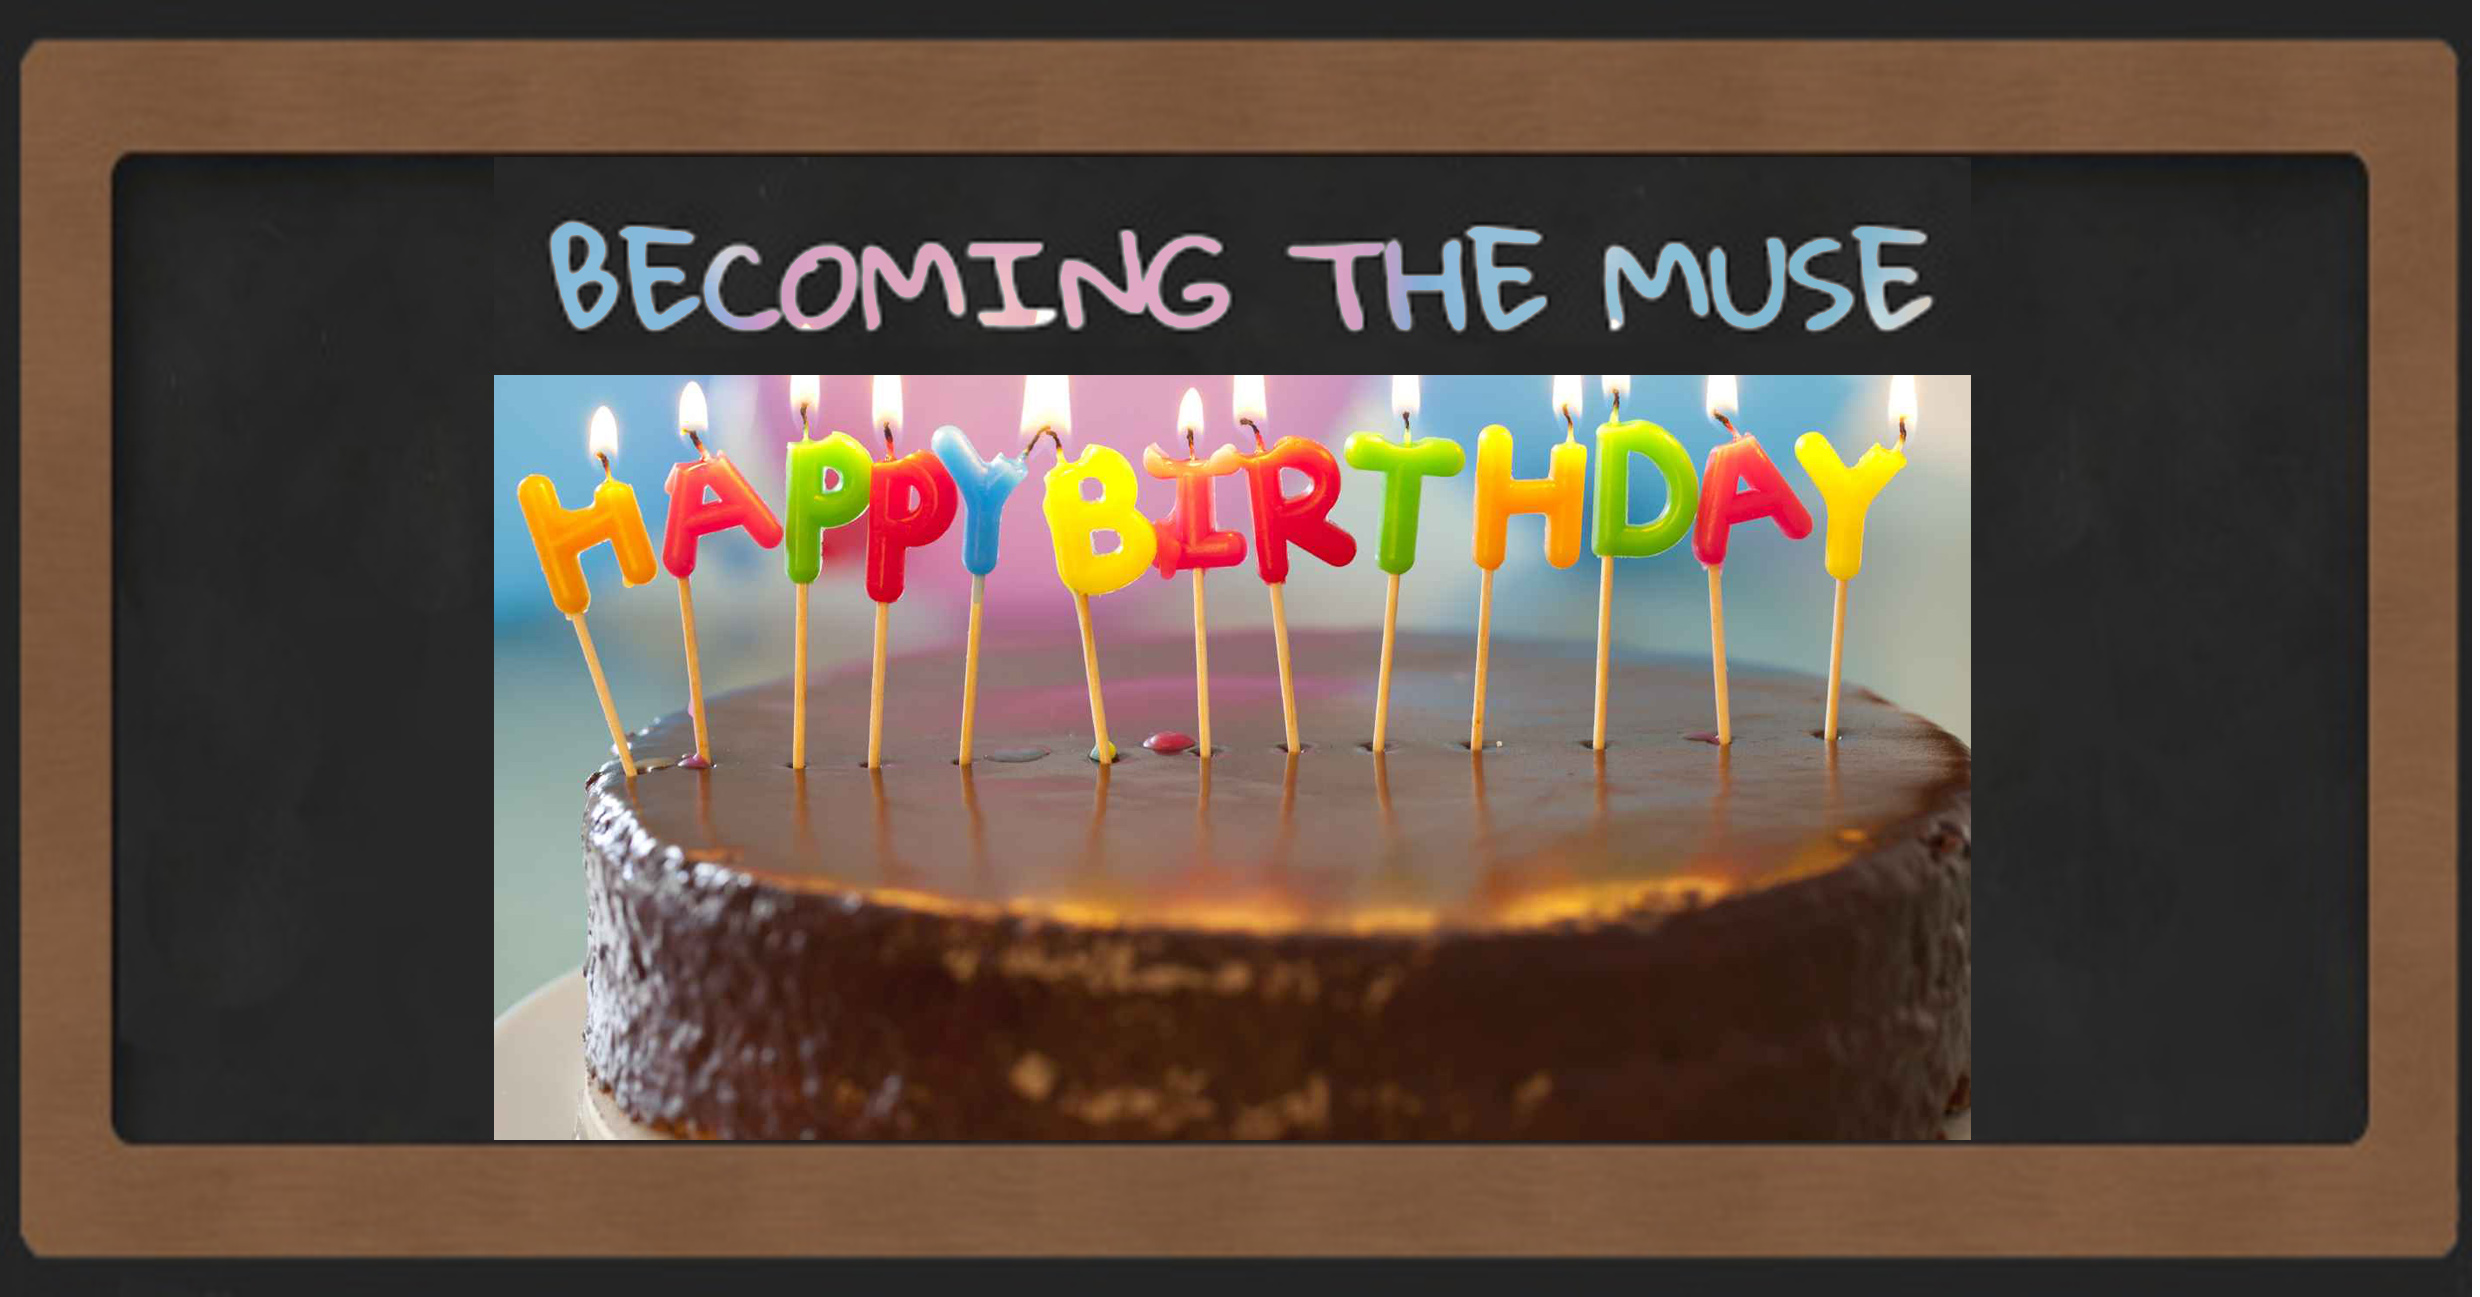 Becoming the muse Birthday